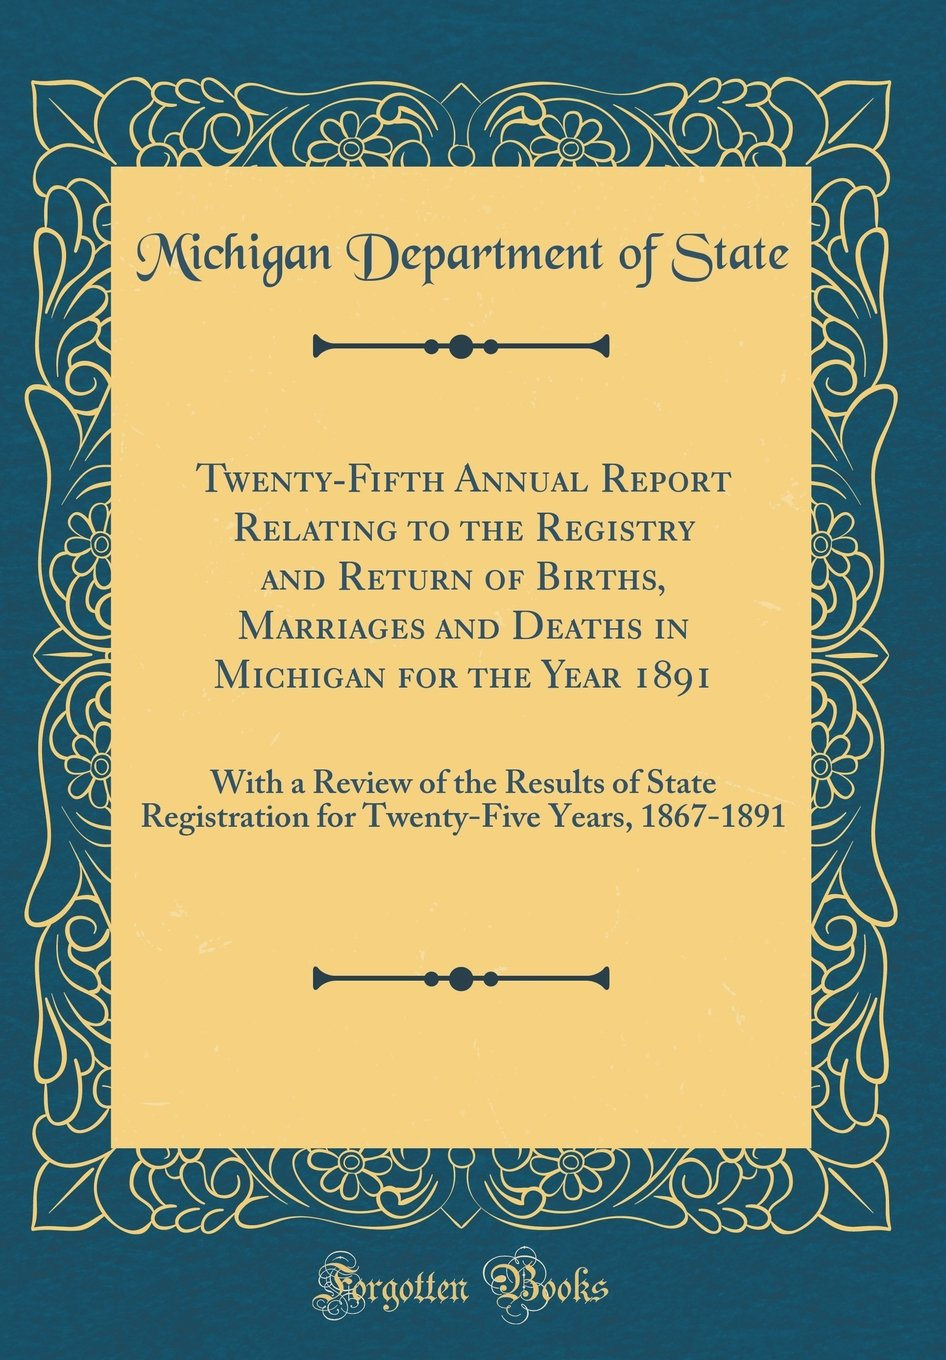 Read Online Twenty-Fifth Annual Report Relating to the Registry and Return of Births, Marriages and Deaths in Michigan for the Year 1891: With a Review of the ... Years, 1867-1891 (Classic Reprint) pdf